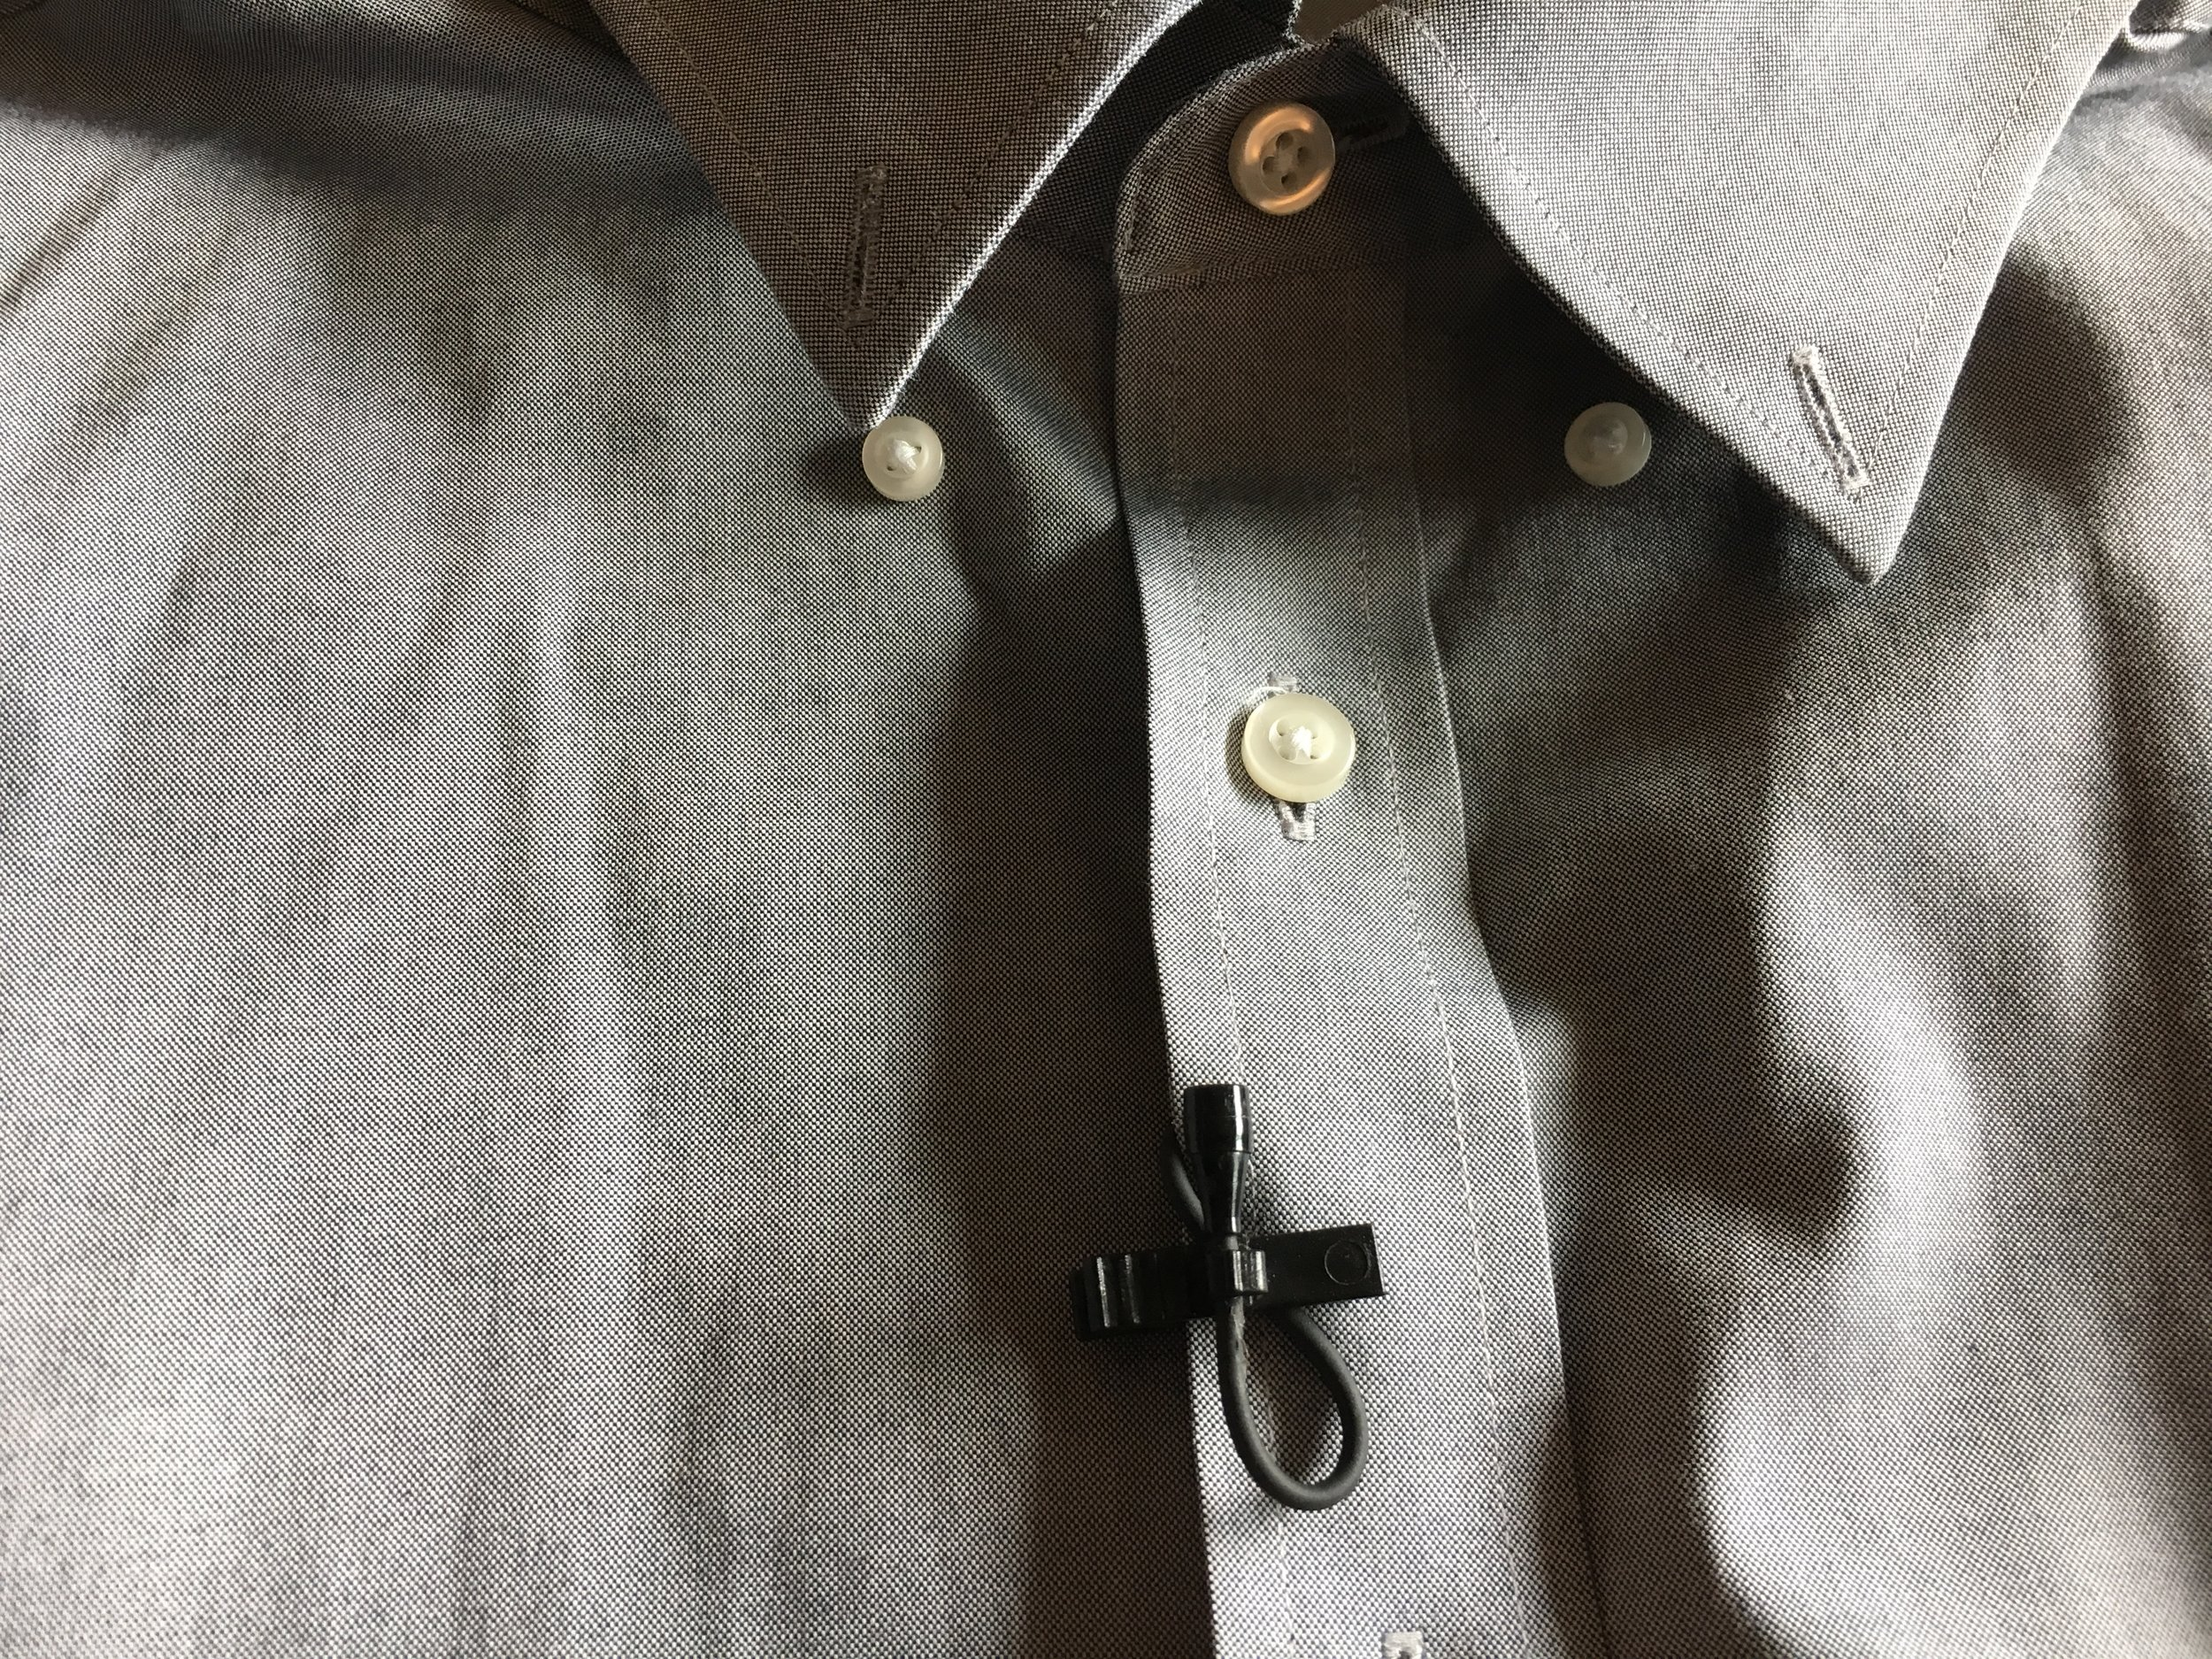 If you are miking a button up, clip the mic with the cord sandwiched under the clip with the mic facing up towards the mouth.